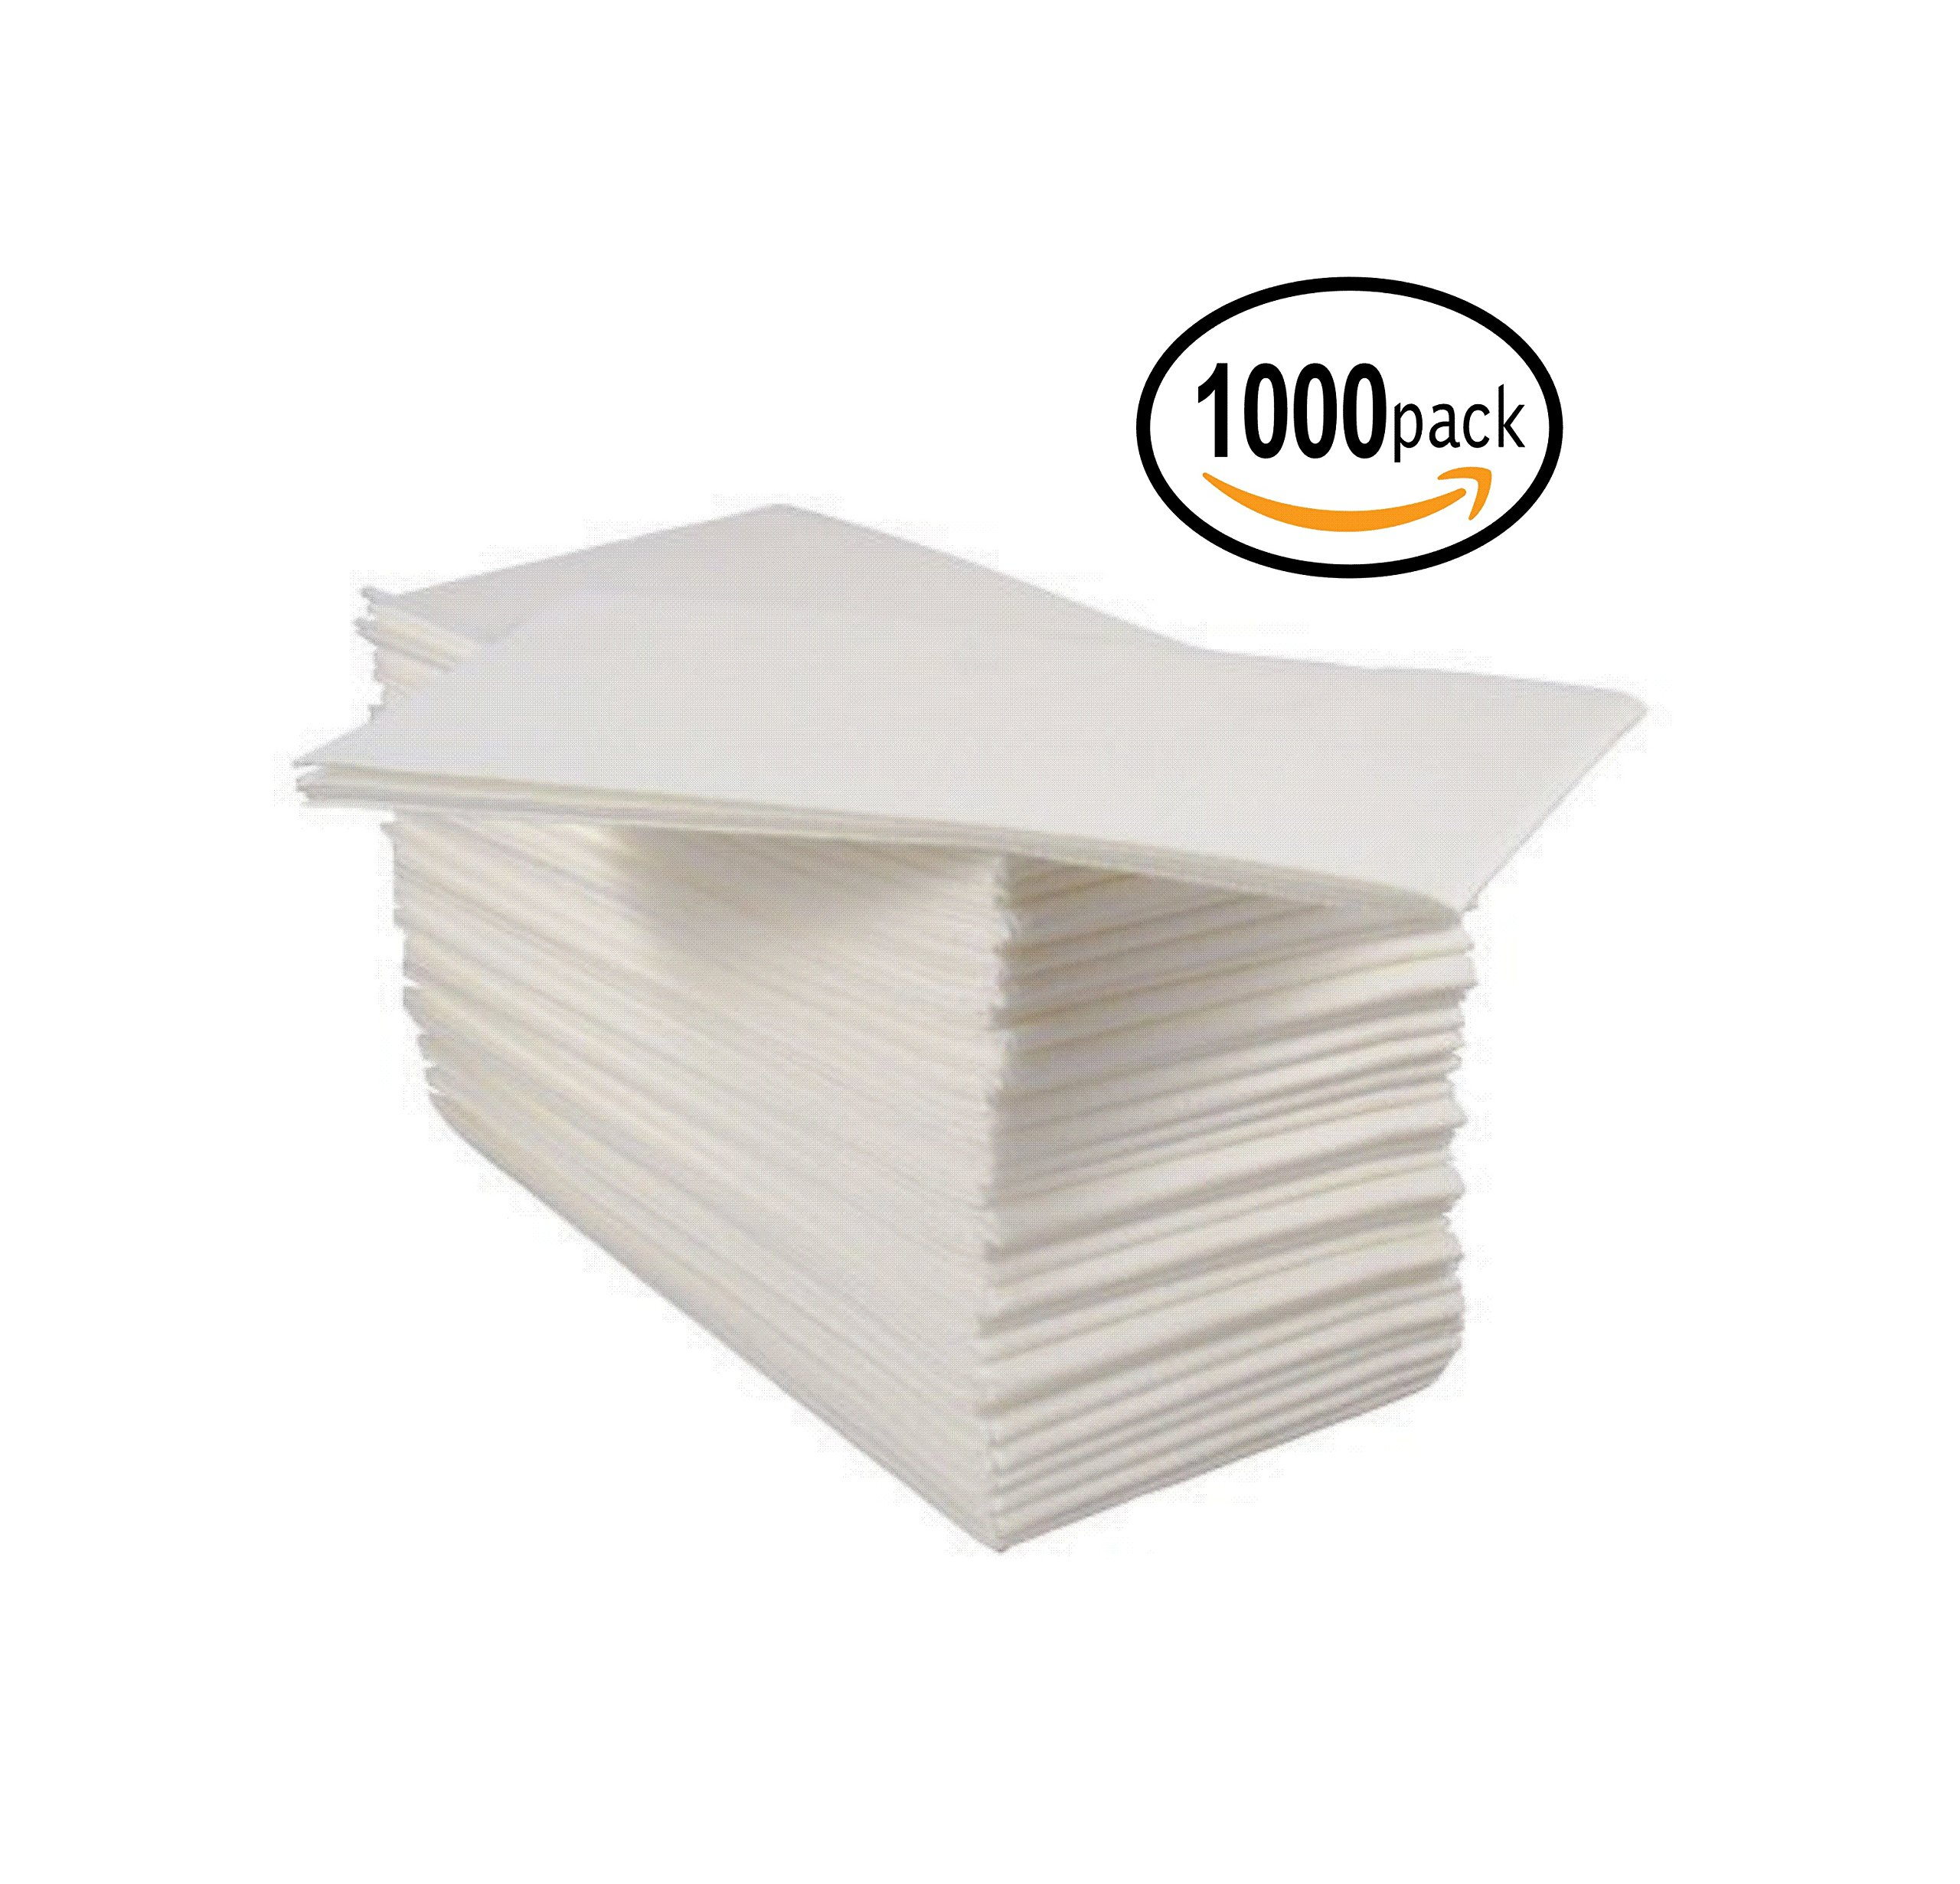 Bloomingoods Disposable Linen-Feel Guest Hand Towels / Cloth-Like Paper Napkins, White, Pack of 1000 (Bulk Packaging) by BloominGoods